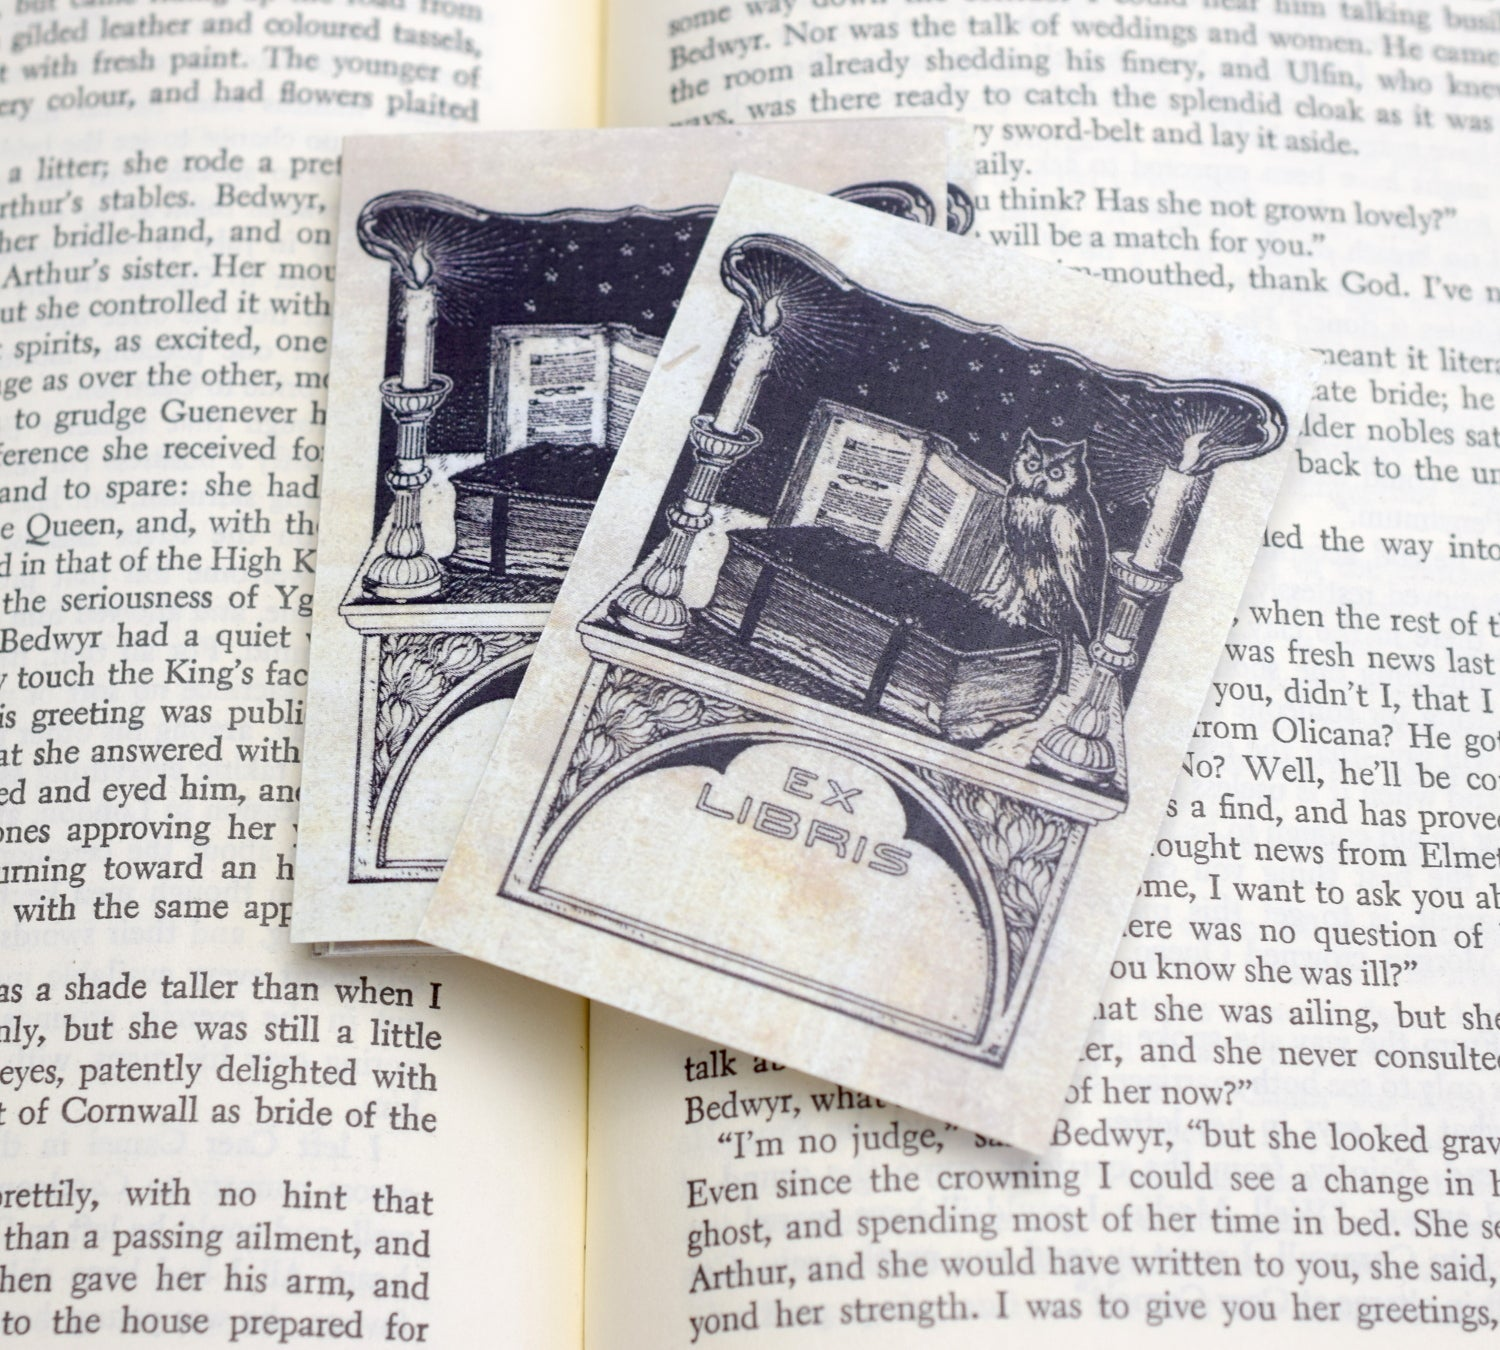 Ex Libris Book Plates with Owl and Candles: Set of 24 Self-Adhesive Labels